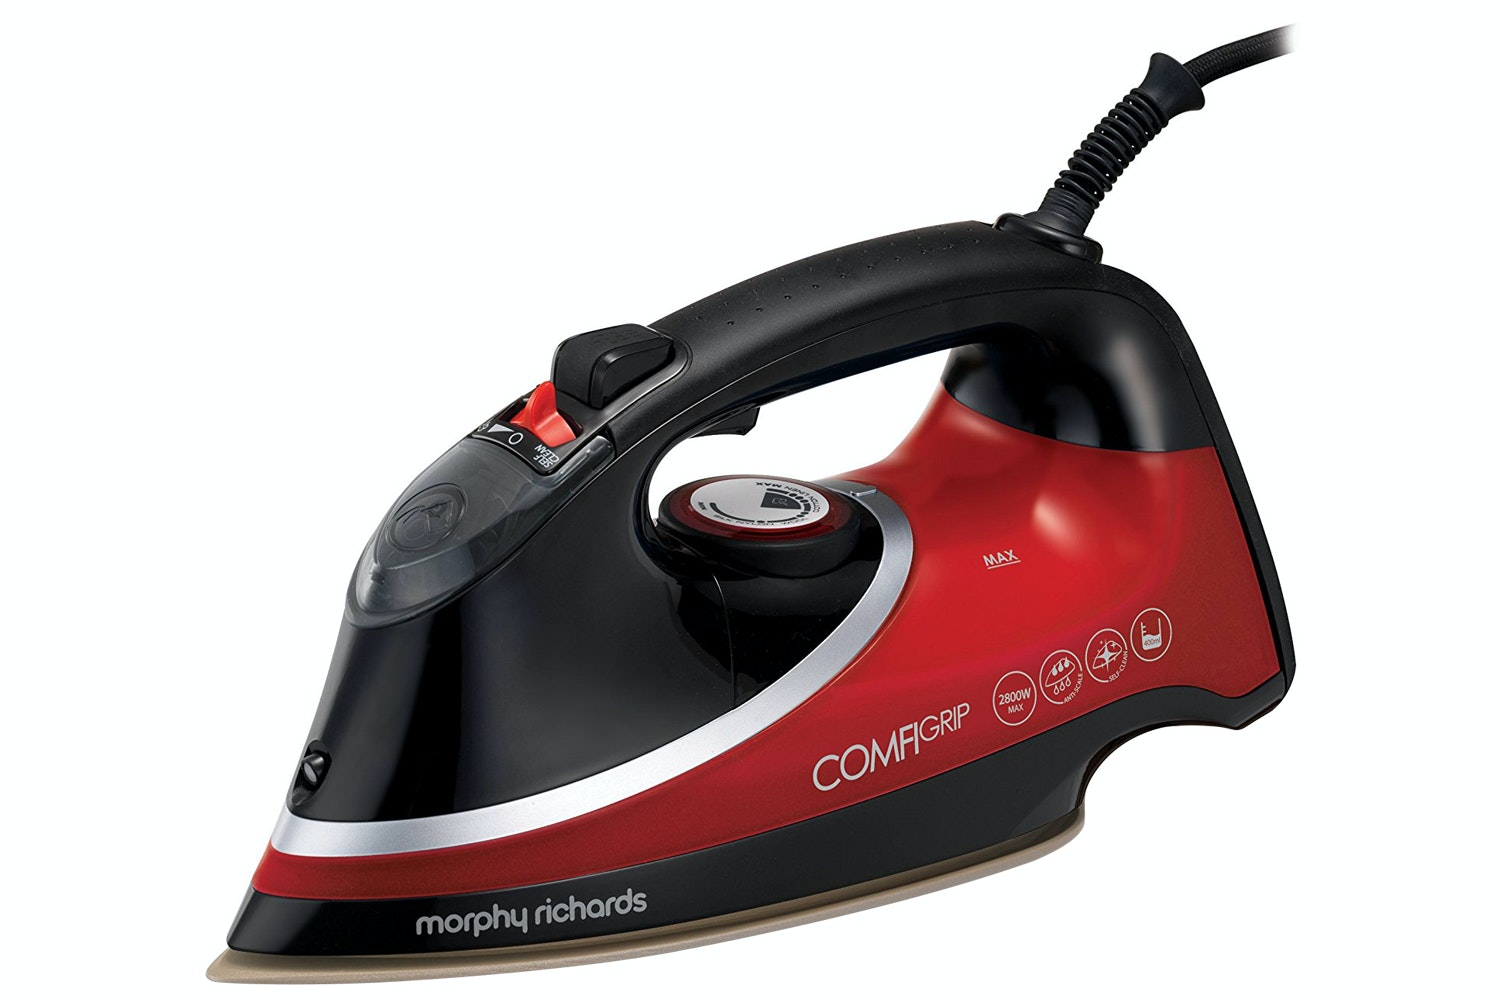 Morphy Richards Comfigrip Steam Iron | 303118